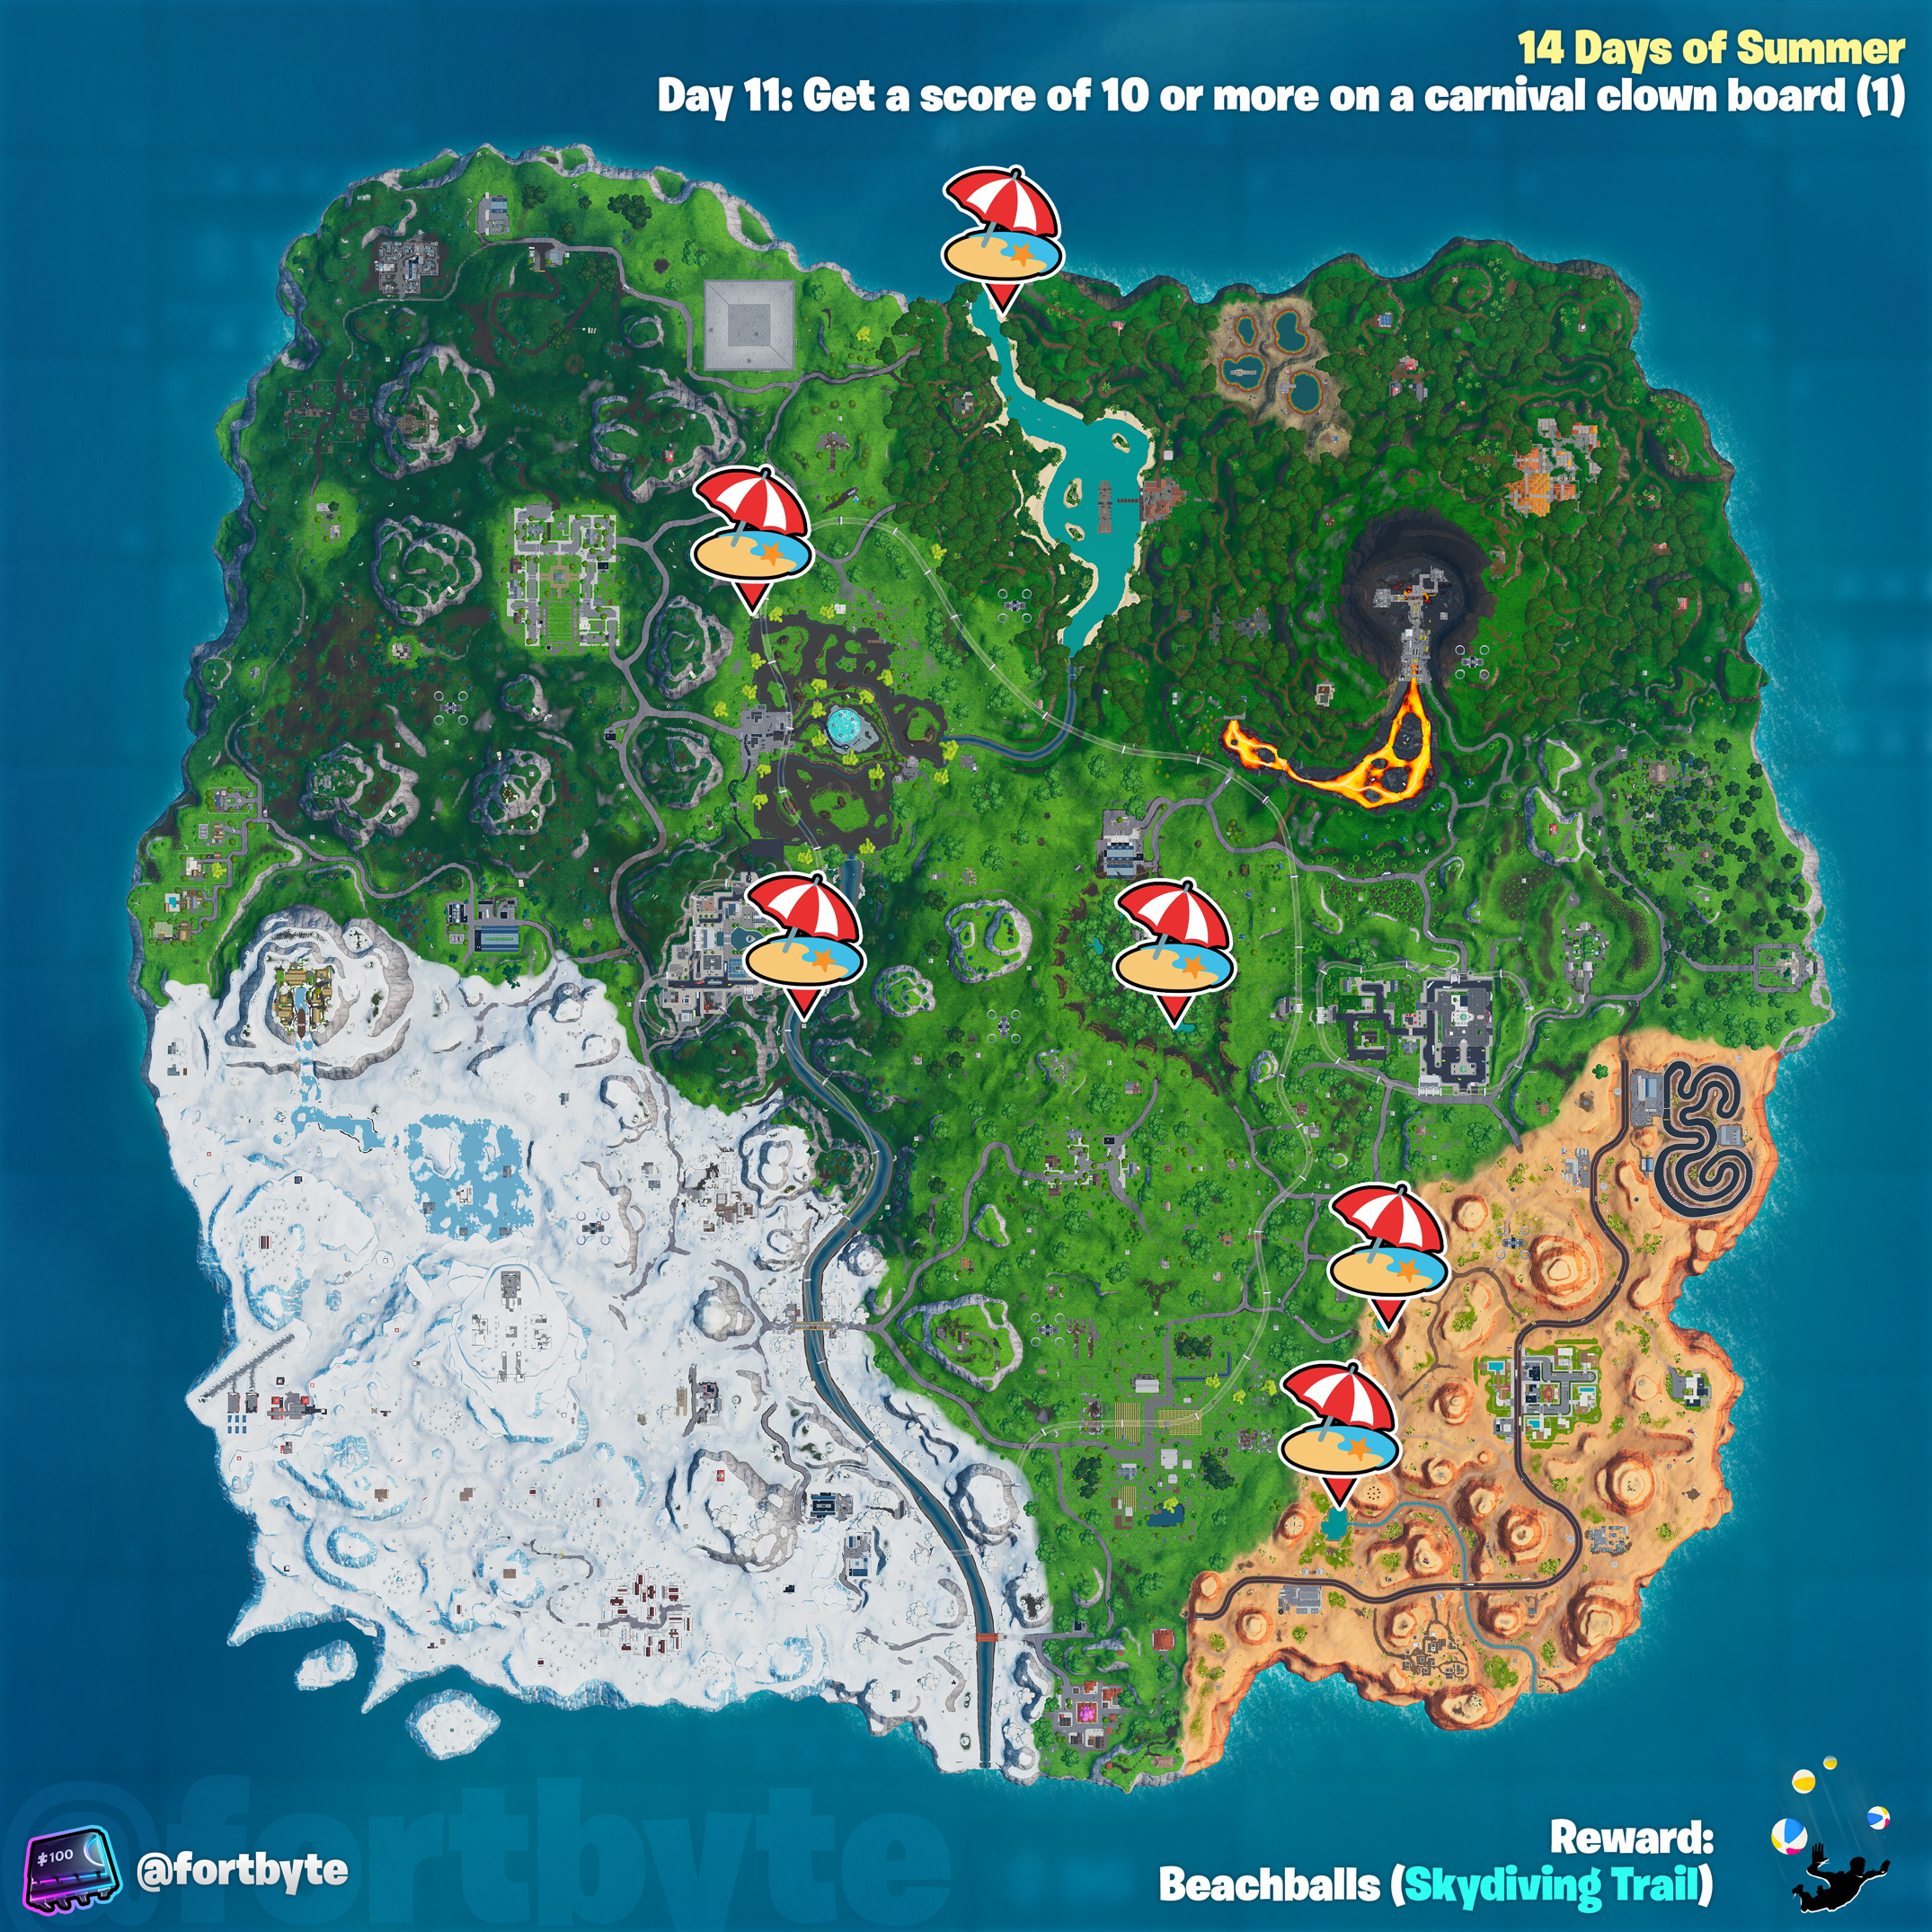 , Fortnite 14 Days of Summer – Get a score of 10 or more on a carnival clown board location guide, AllYourGames.com, AllYourGames.com